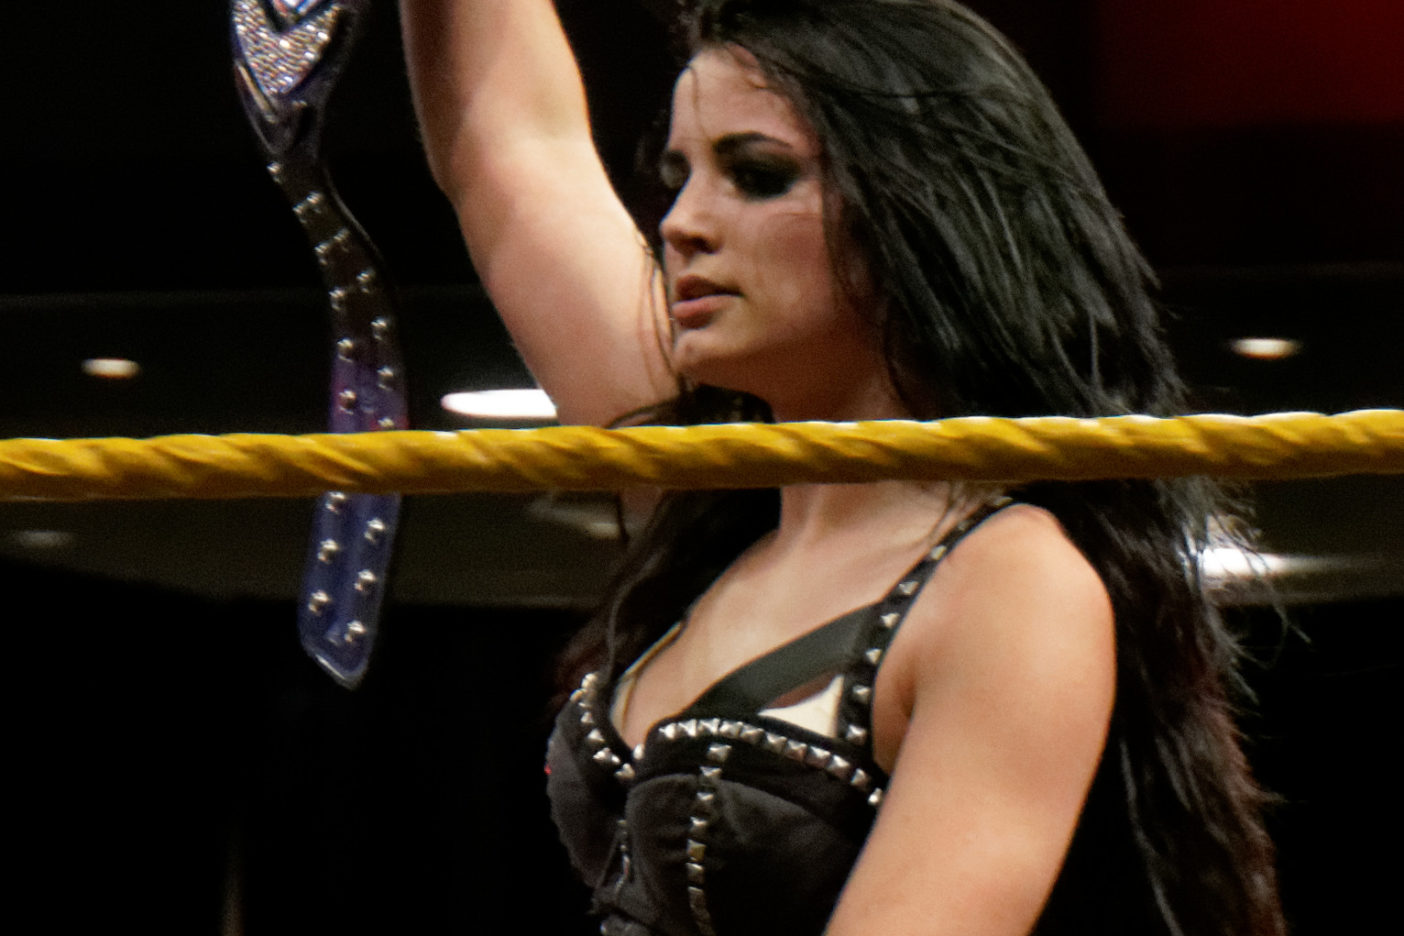 WWE Star Paige Will Never Wrestle Again After Horrific Neck Injury 2014 04 03 21 16 33 NEX 6 6441 DxO 13923810015 1404x936